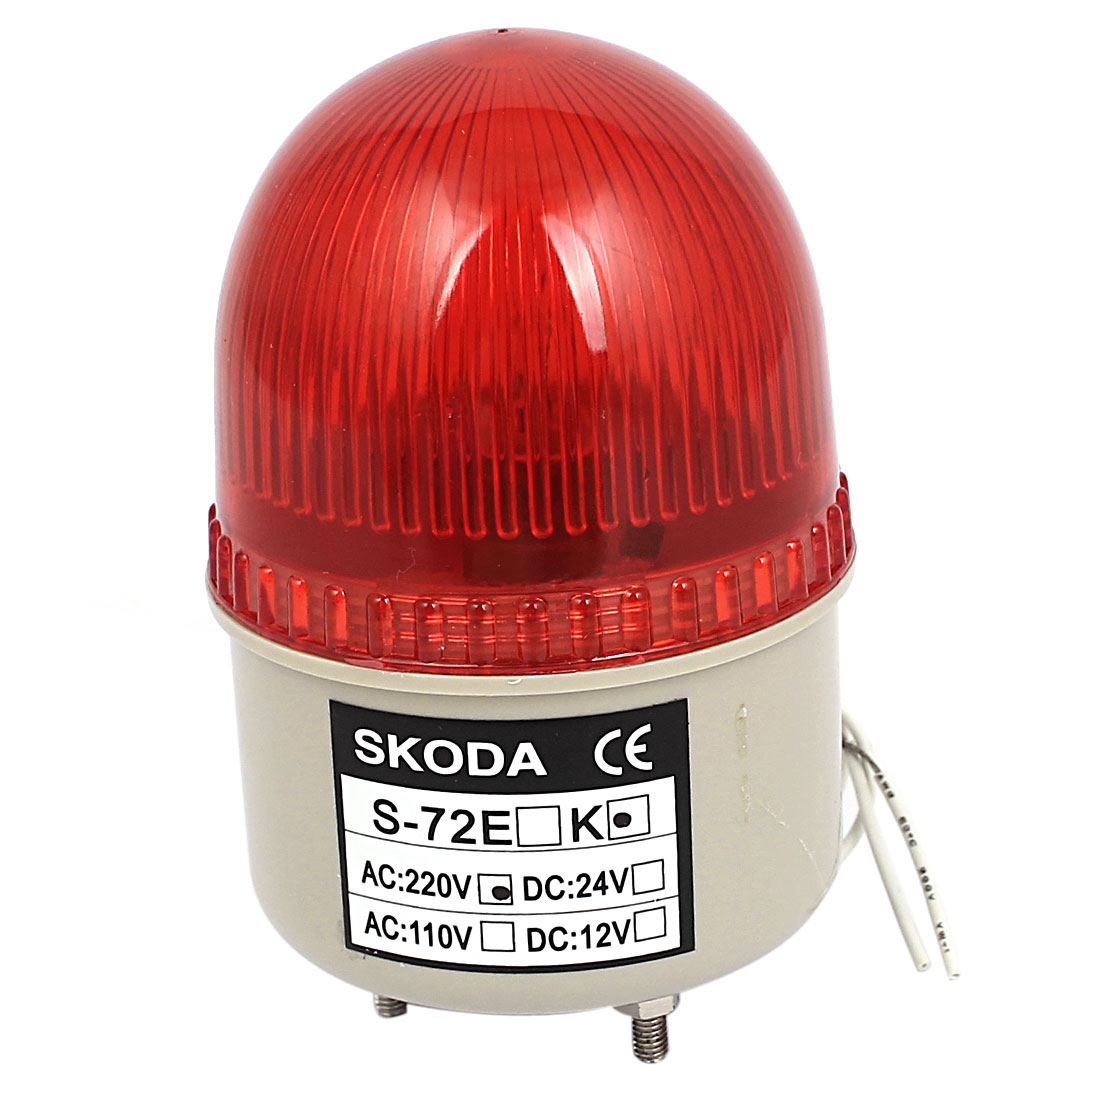 S-72E AC 220V Red LED Warning Light Rotary Flashing Strobe Industrial Signal Lamp